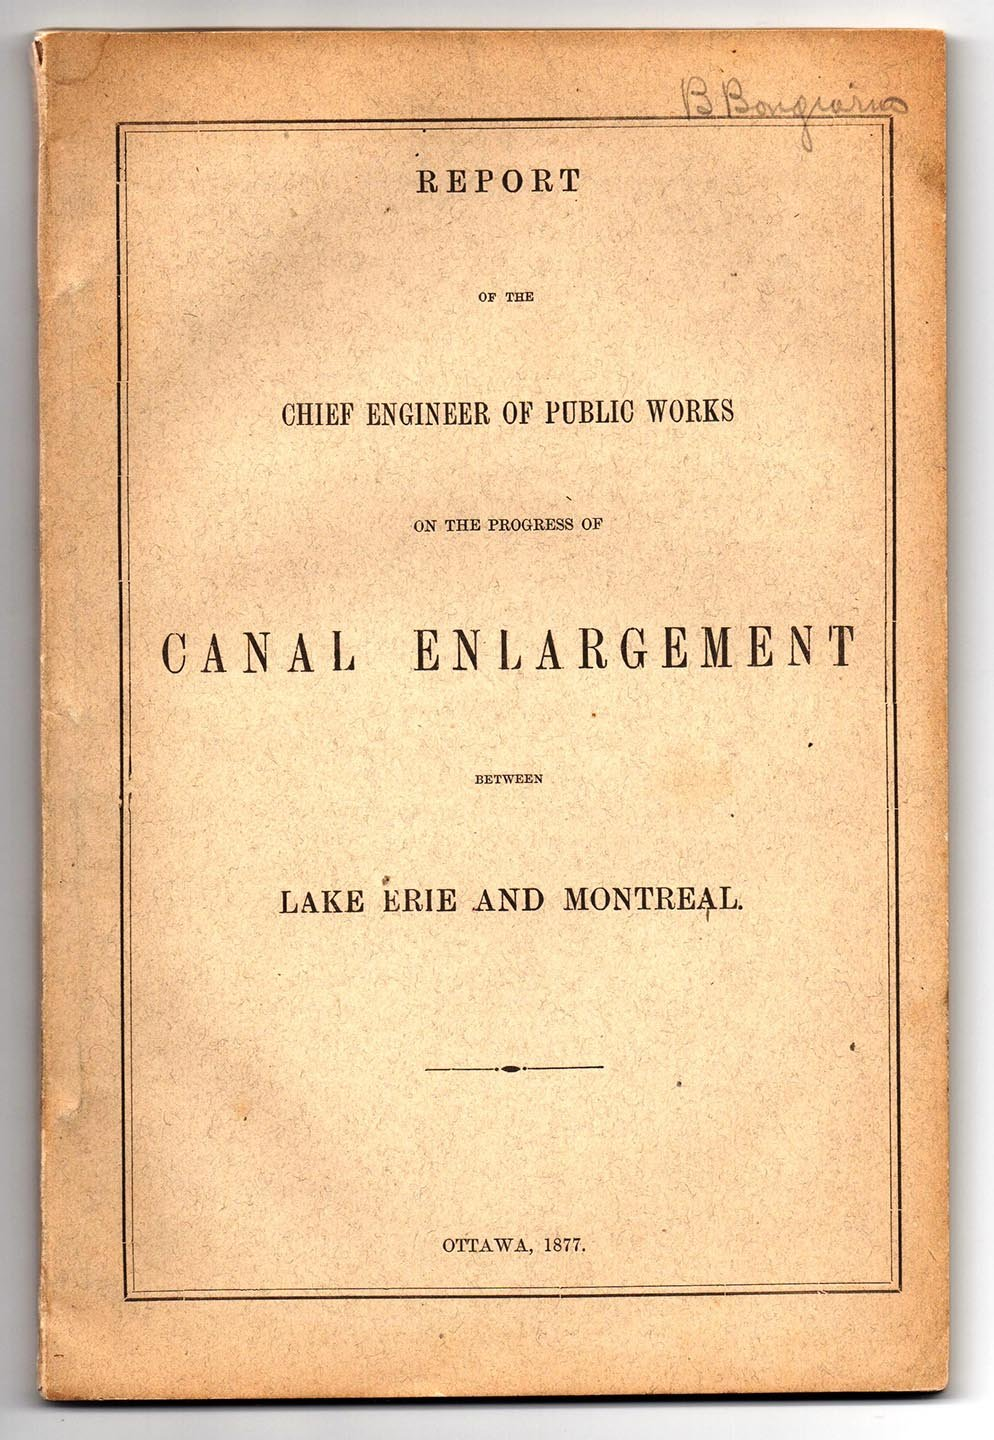 Report of the Chief Engineer of Public Works on the Progress of Canal Enlargement Between Lake Erie and Montreal